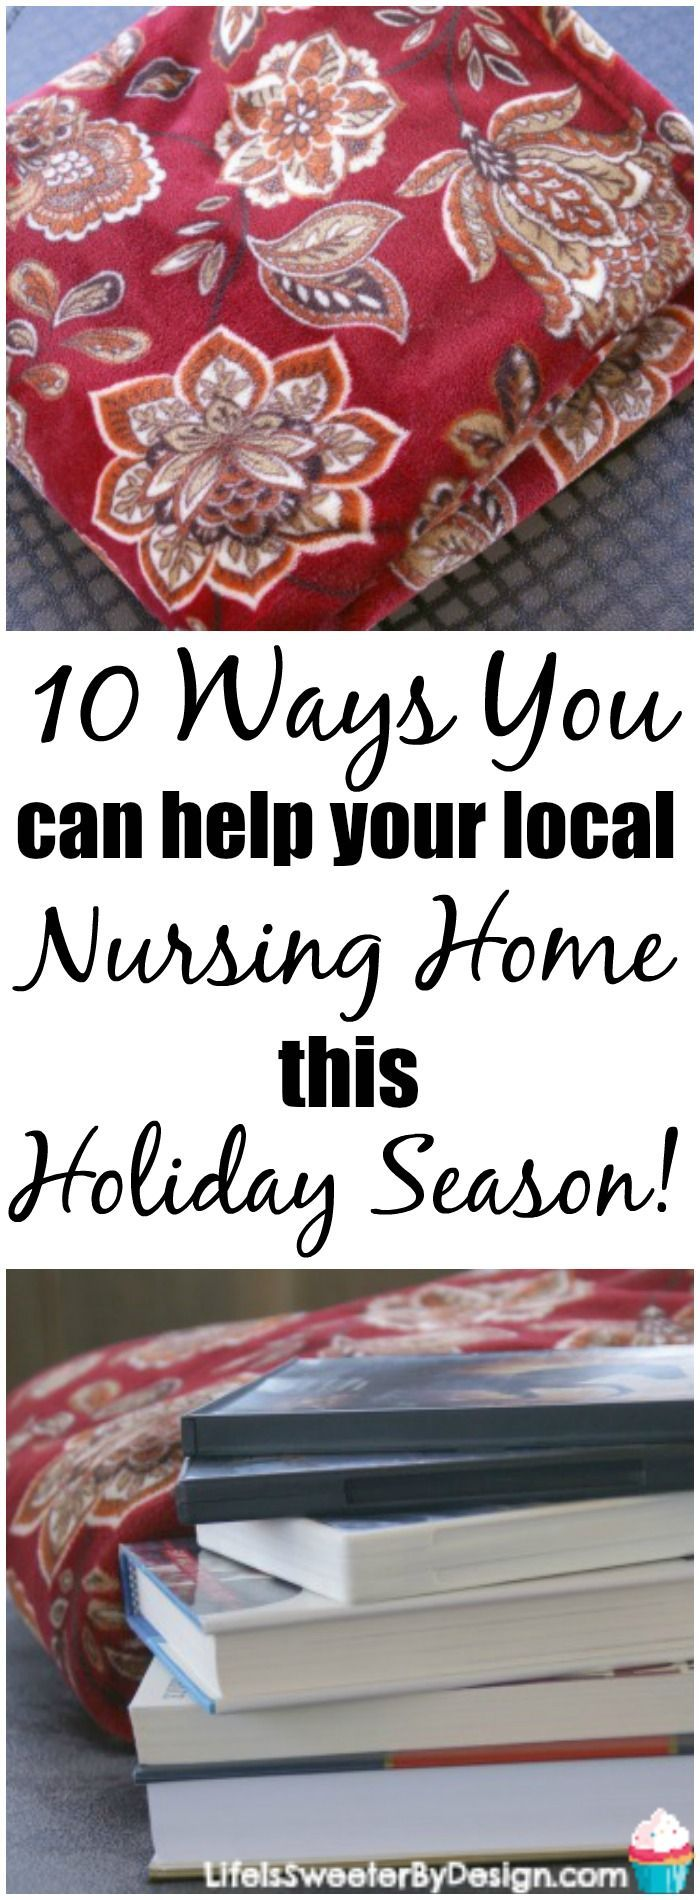 You can help your local nursing home this holiday season so easily! Giving back as a family can be meaningful and the elderly get overlooked too often! This is the perfect way to help others at Christmas!